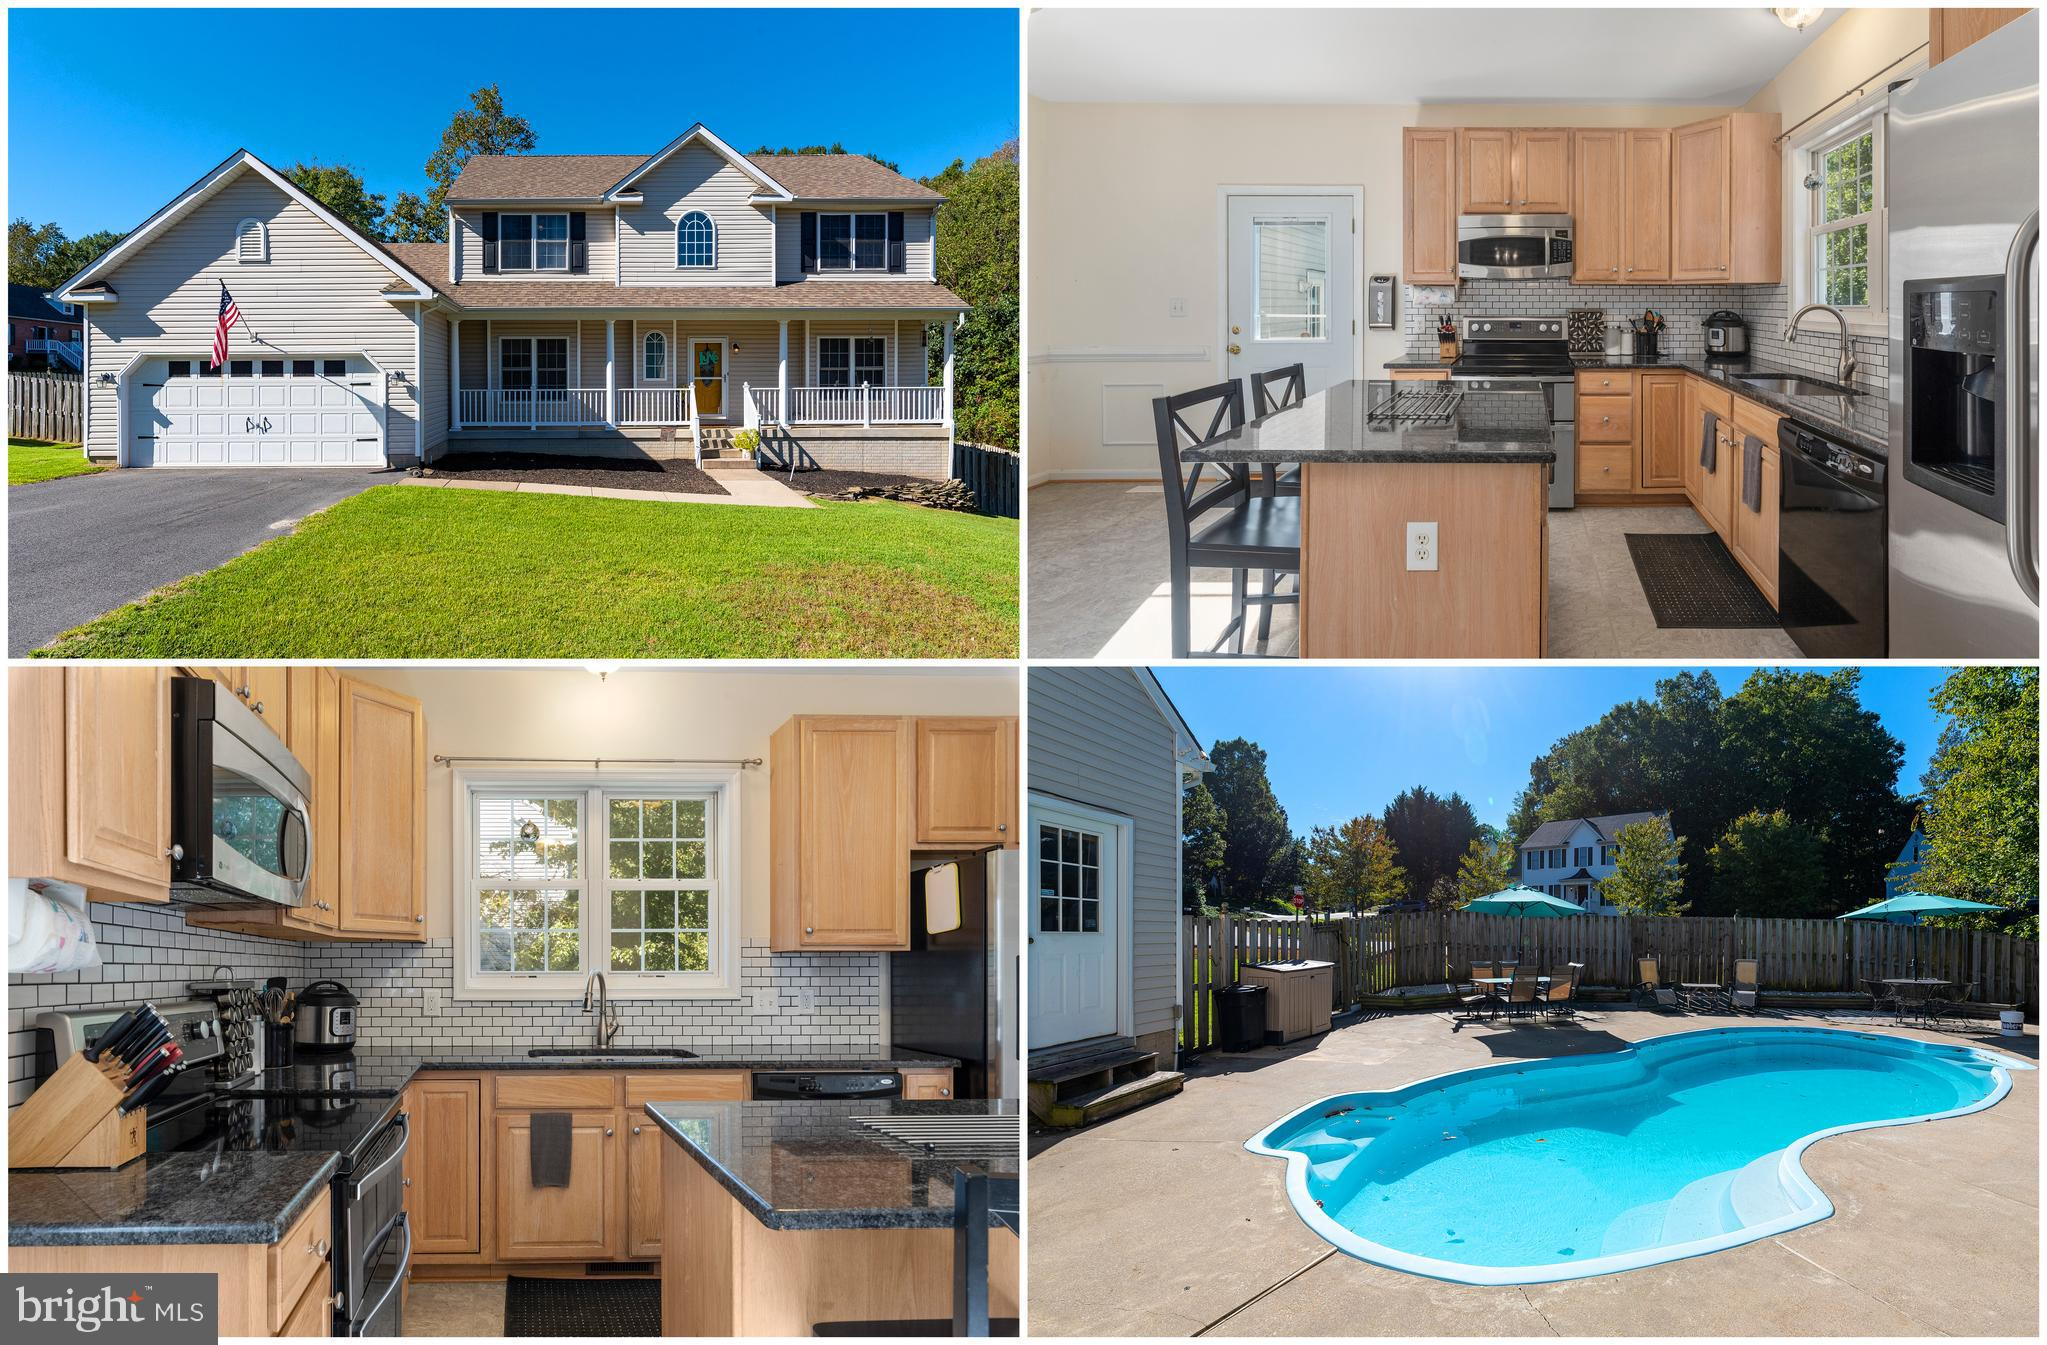 5 BR, 3.5 BA MINS FROM CENTRAL PARK/I-95! HUGE CONCRETE PATIO W/ IN-GROUND POOL, BACKYARD W/ WOODED